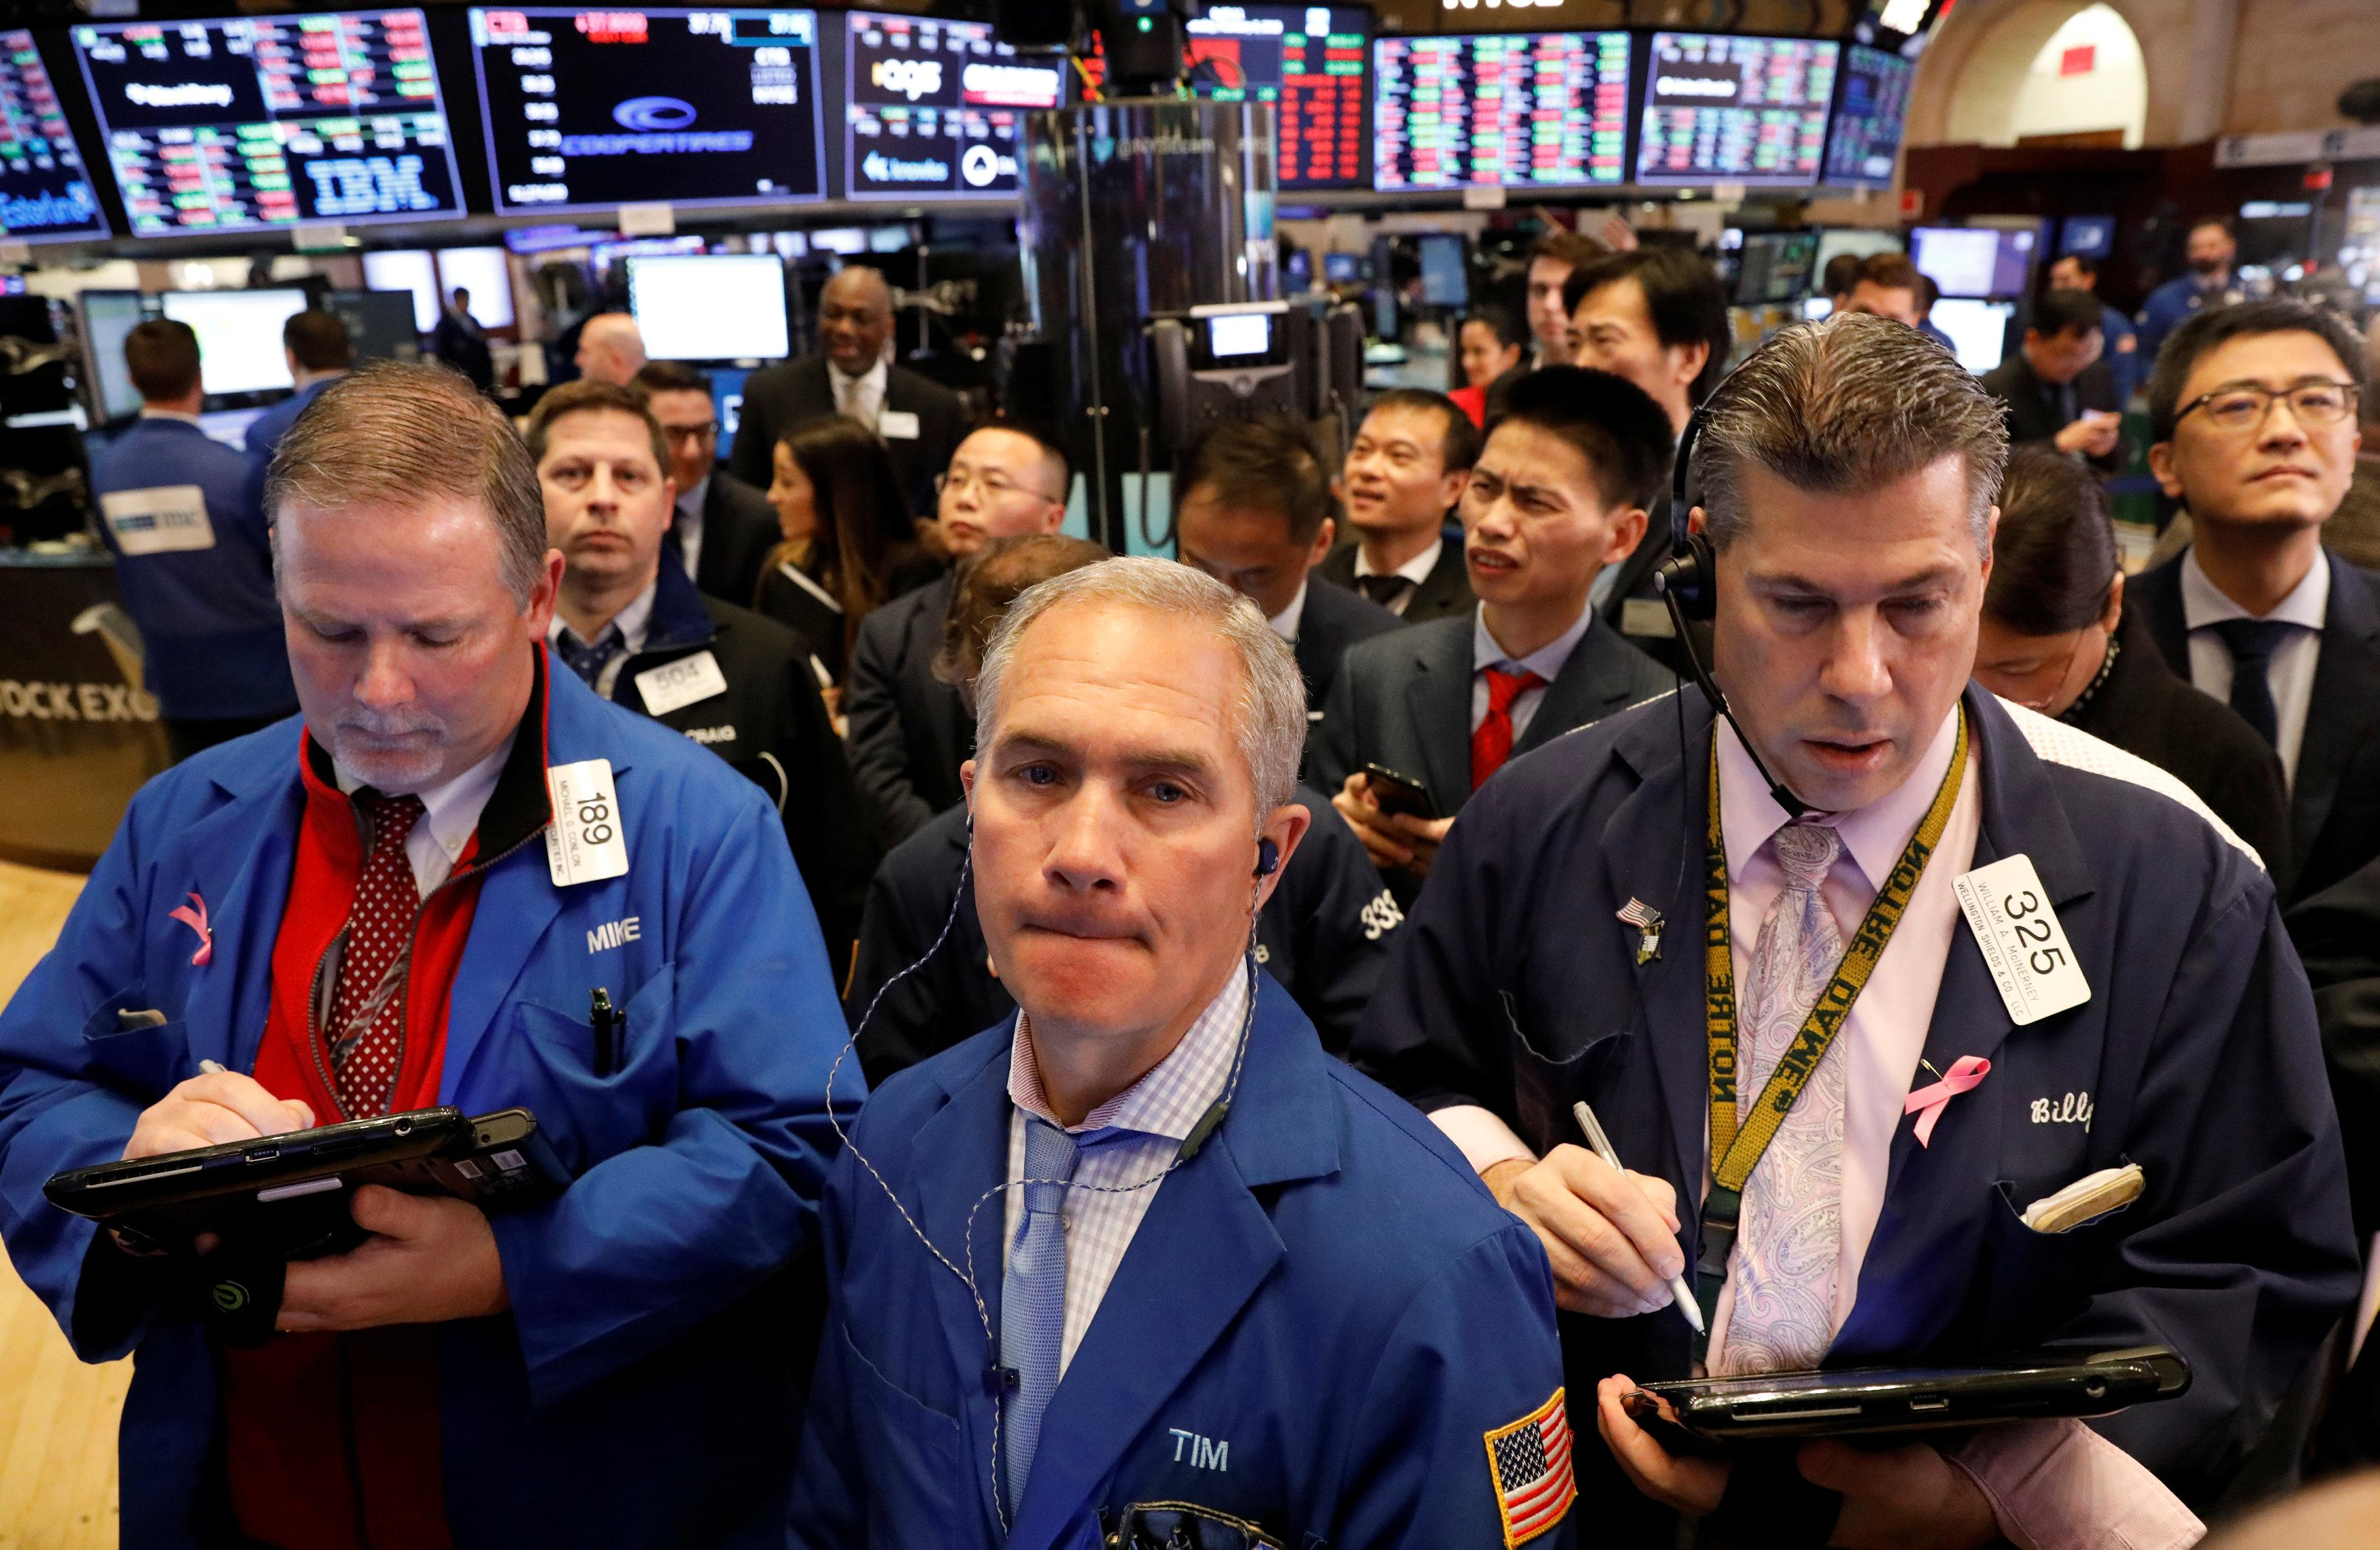 Traders work on the floor of the New York Stock Exchange (NYSE) in New York, U.S., February 8, 2018. Brendan McDermid